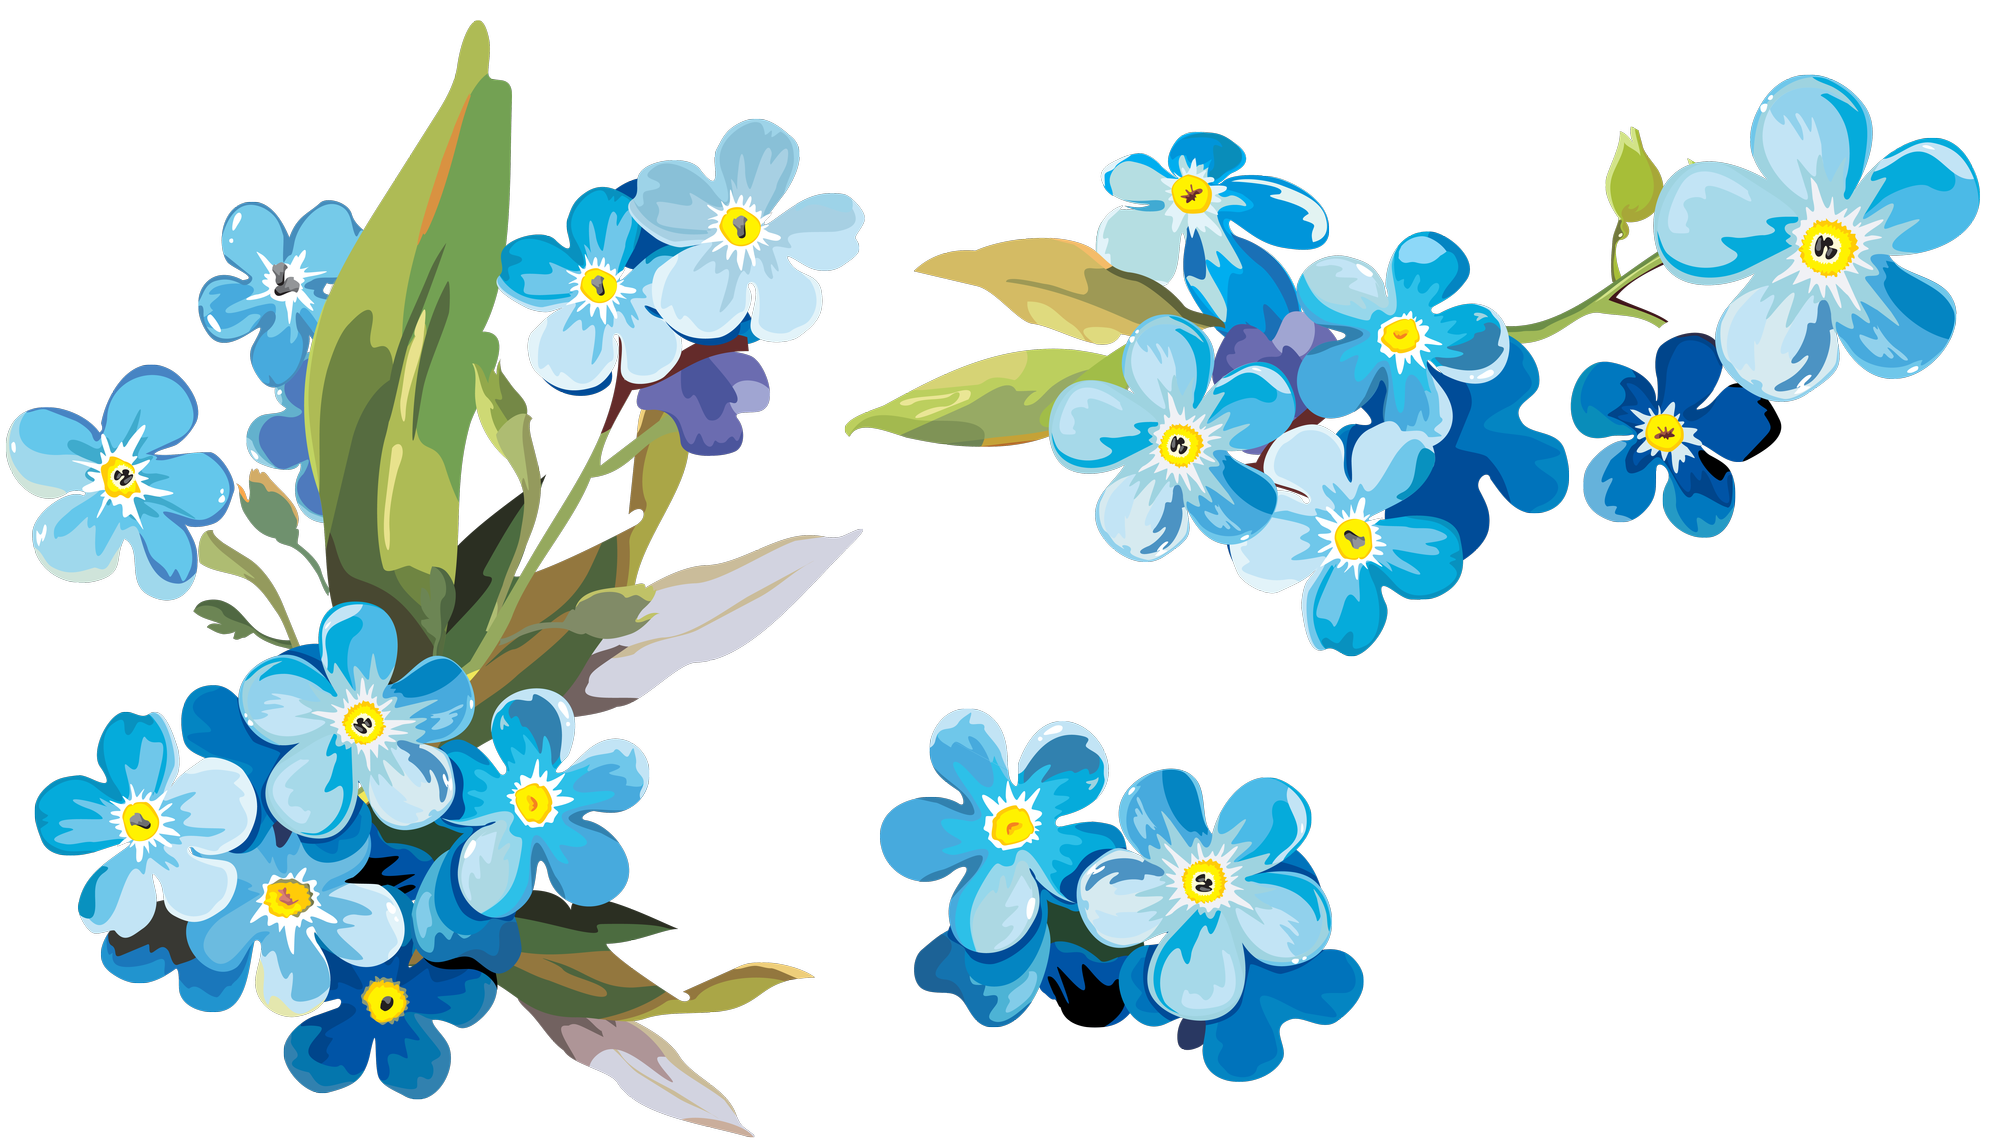 Watercolor painting Paper Clip art - Watercolor blue floral ... image freeuse download